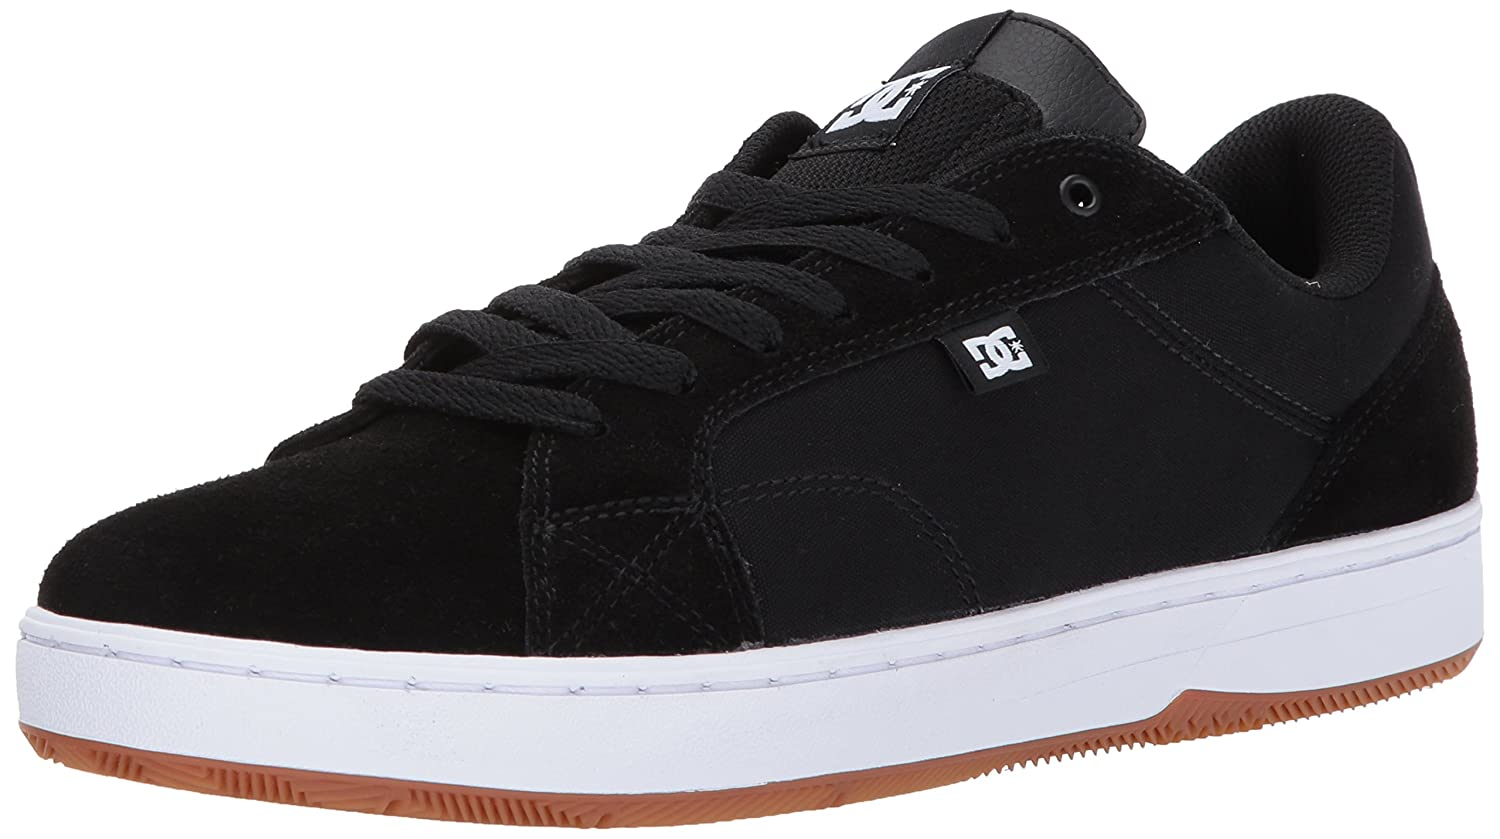 DC Men's Astor Skateboarding Shoe 7 D D US|Black/White/Gum